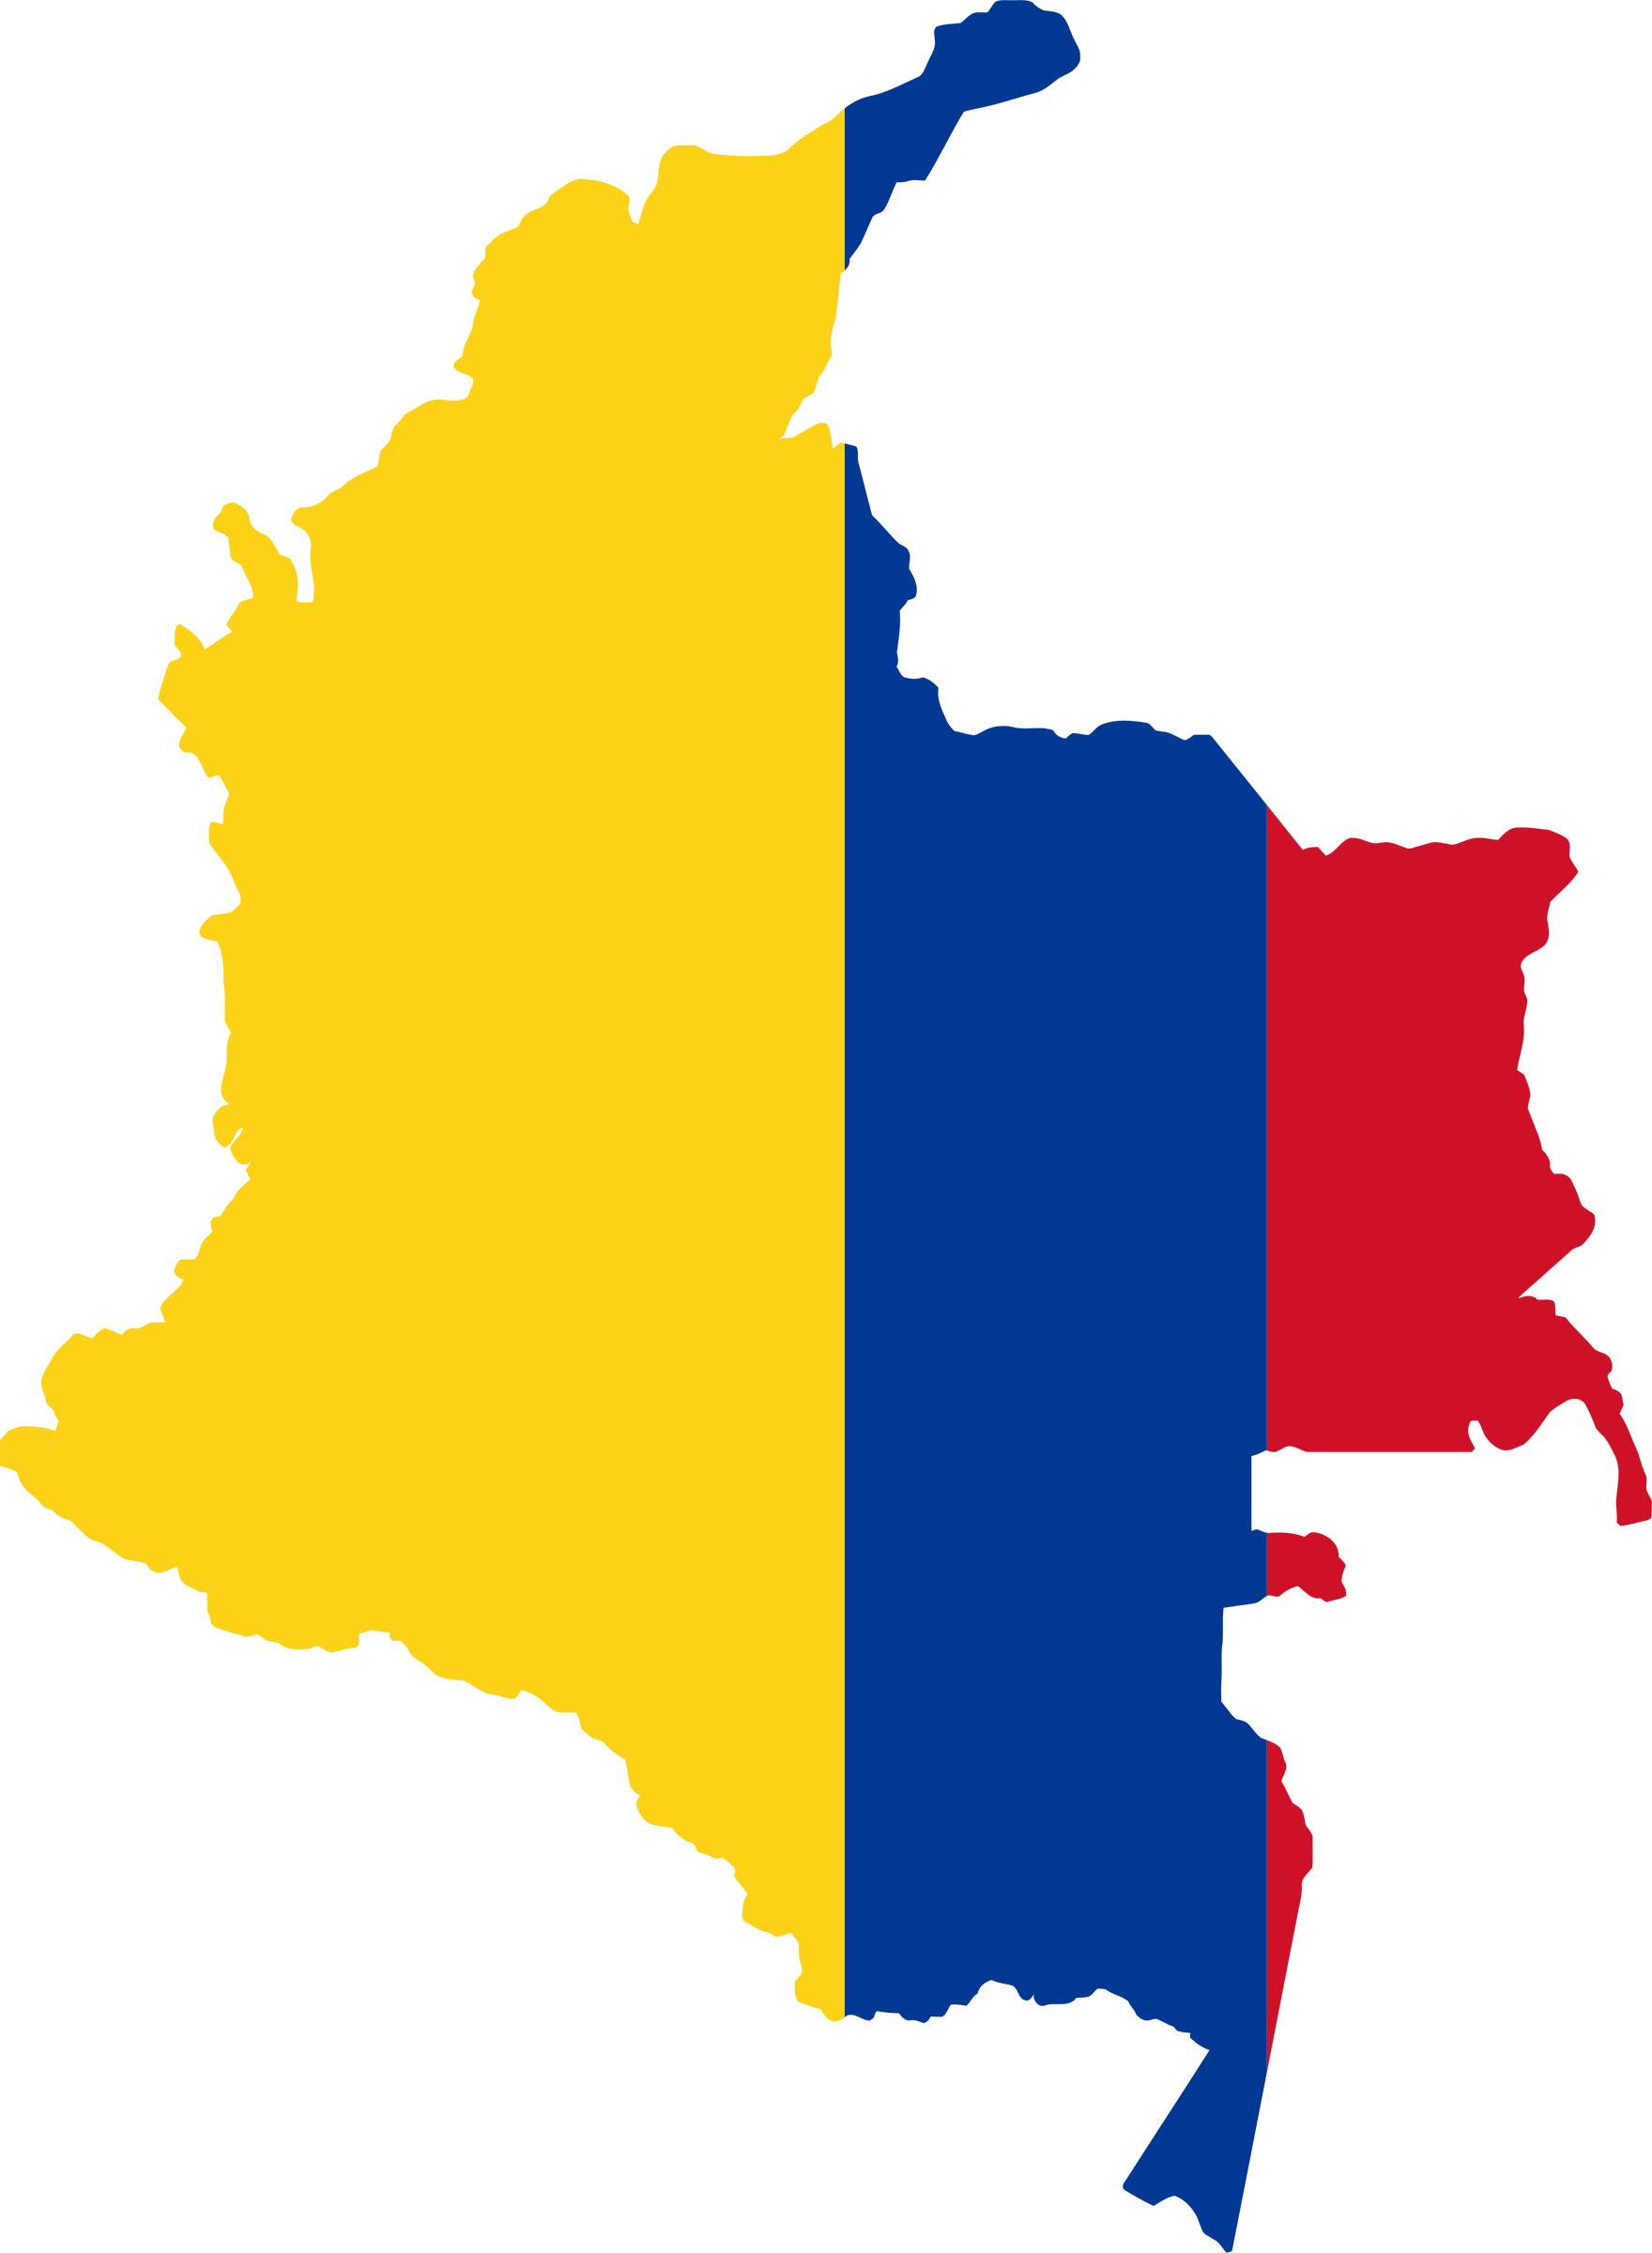 Colombia map png. Google search utilise tes